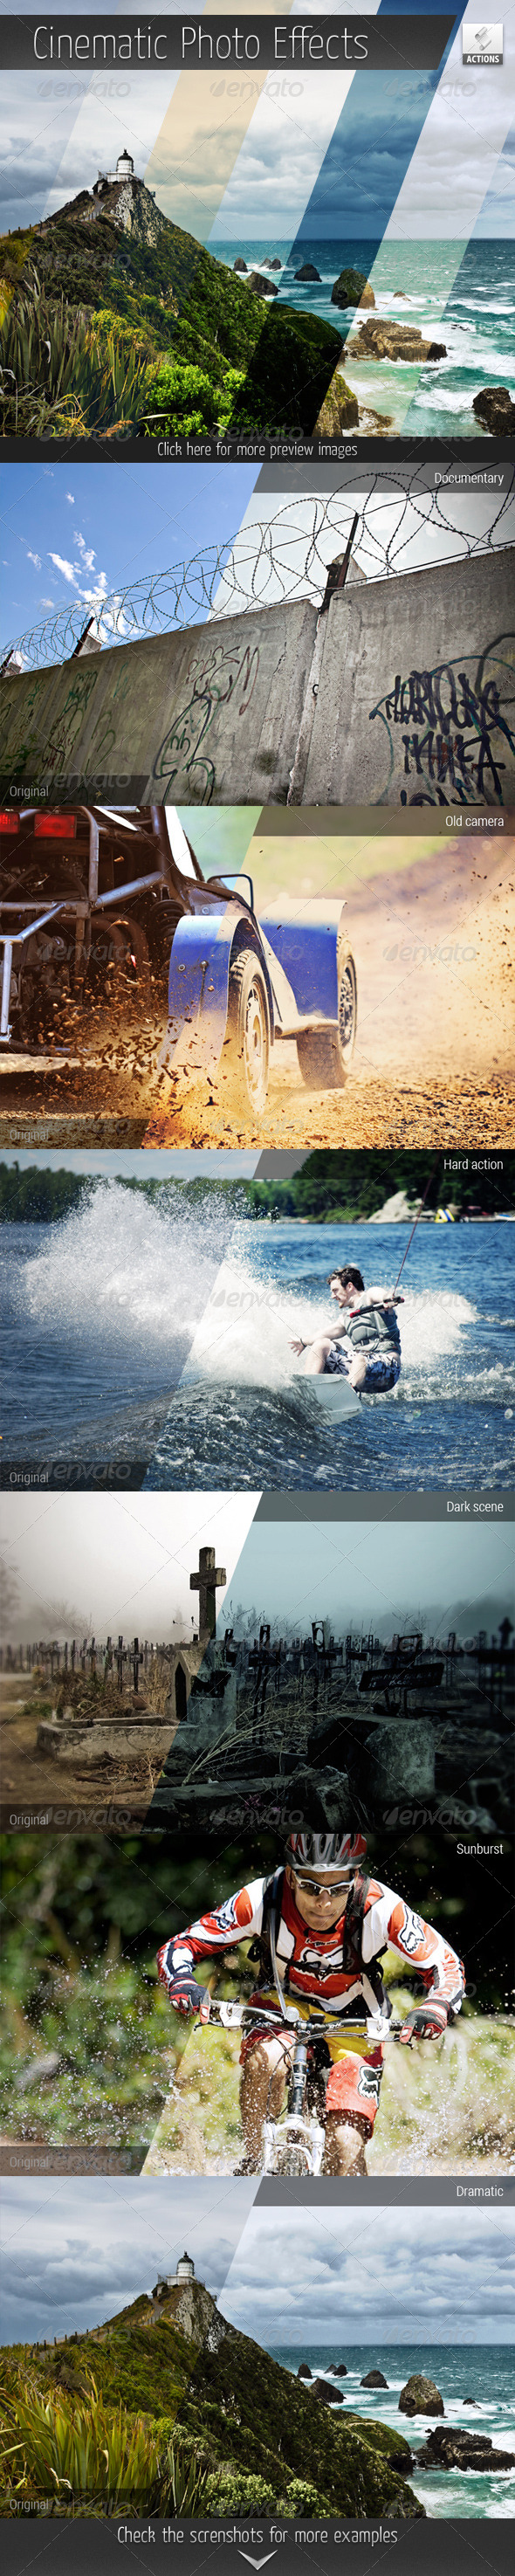 GraphicRiver Cinematic Photo Effect Actions 6103422